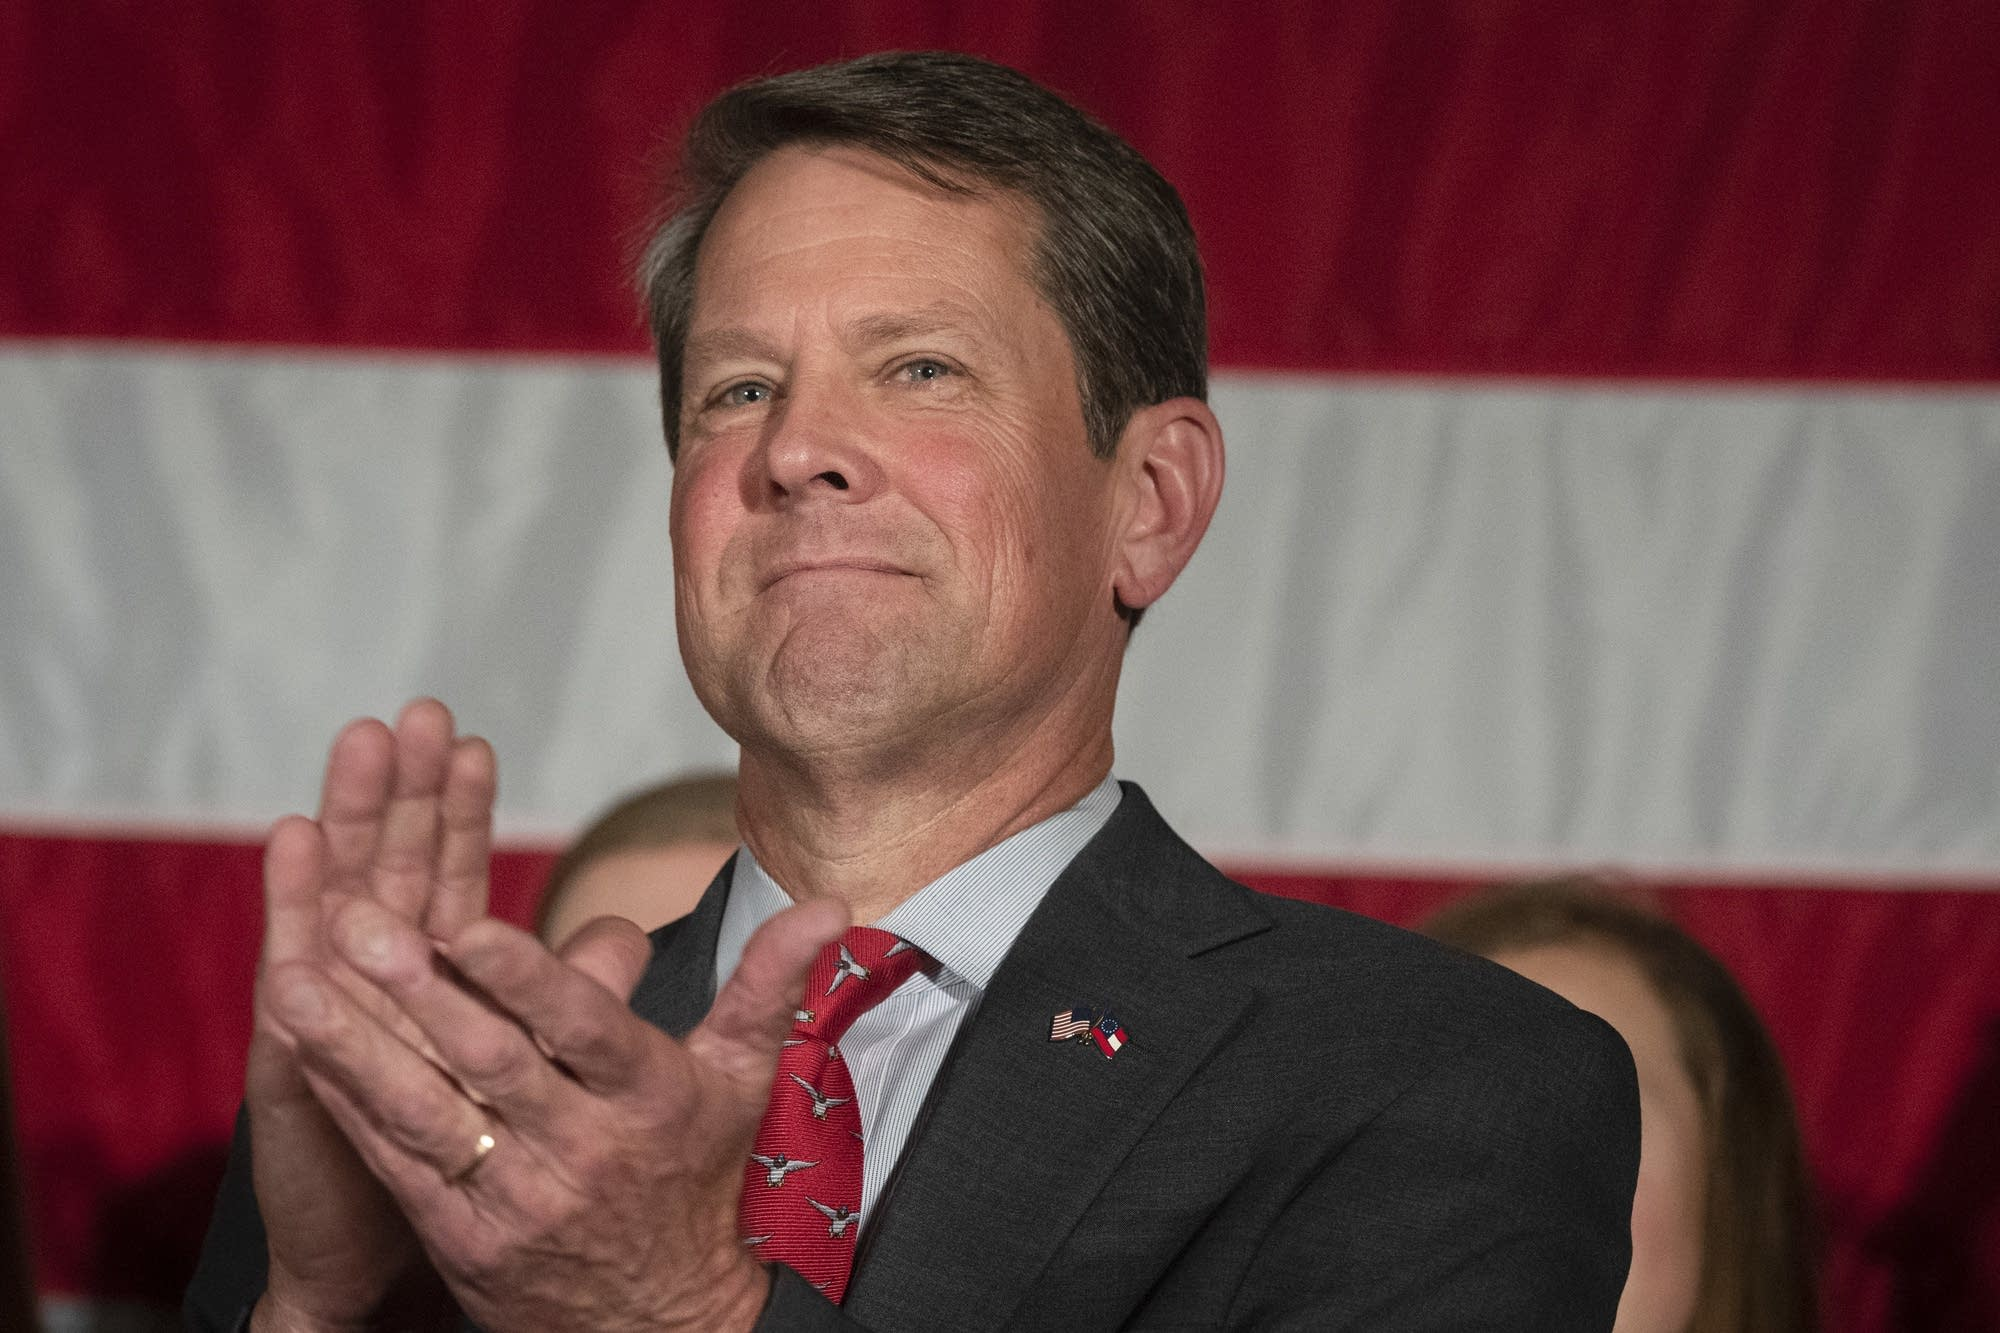 Georgia Secretary of State Brian Kemp